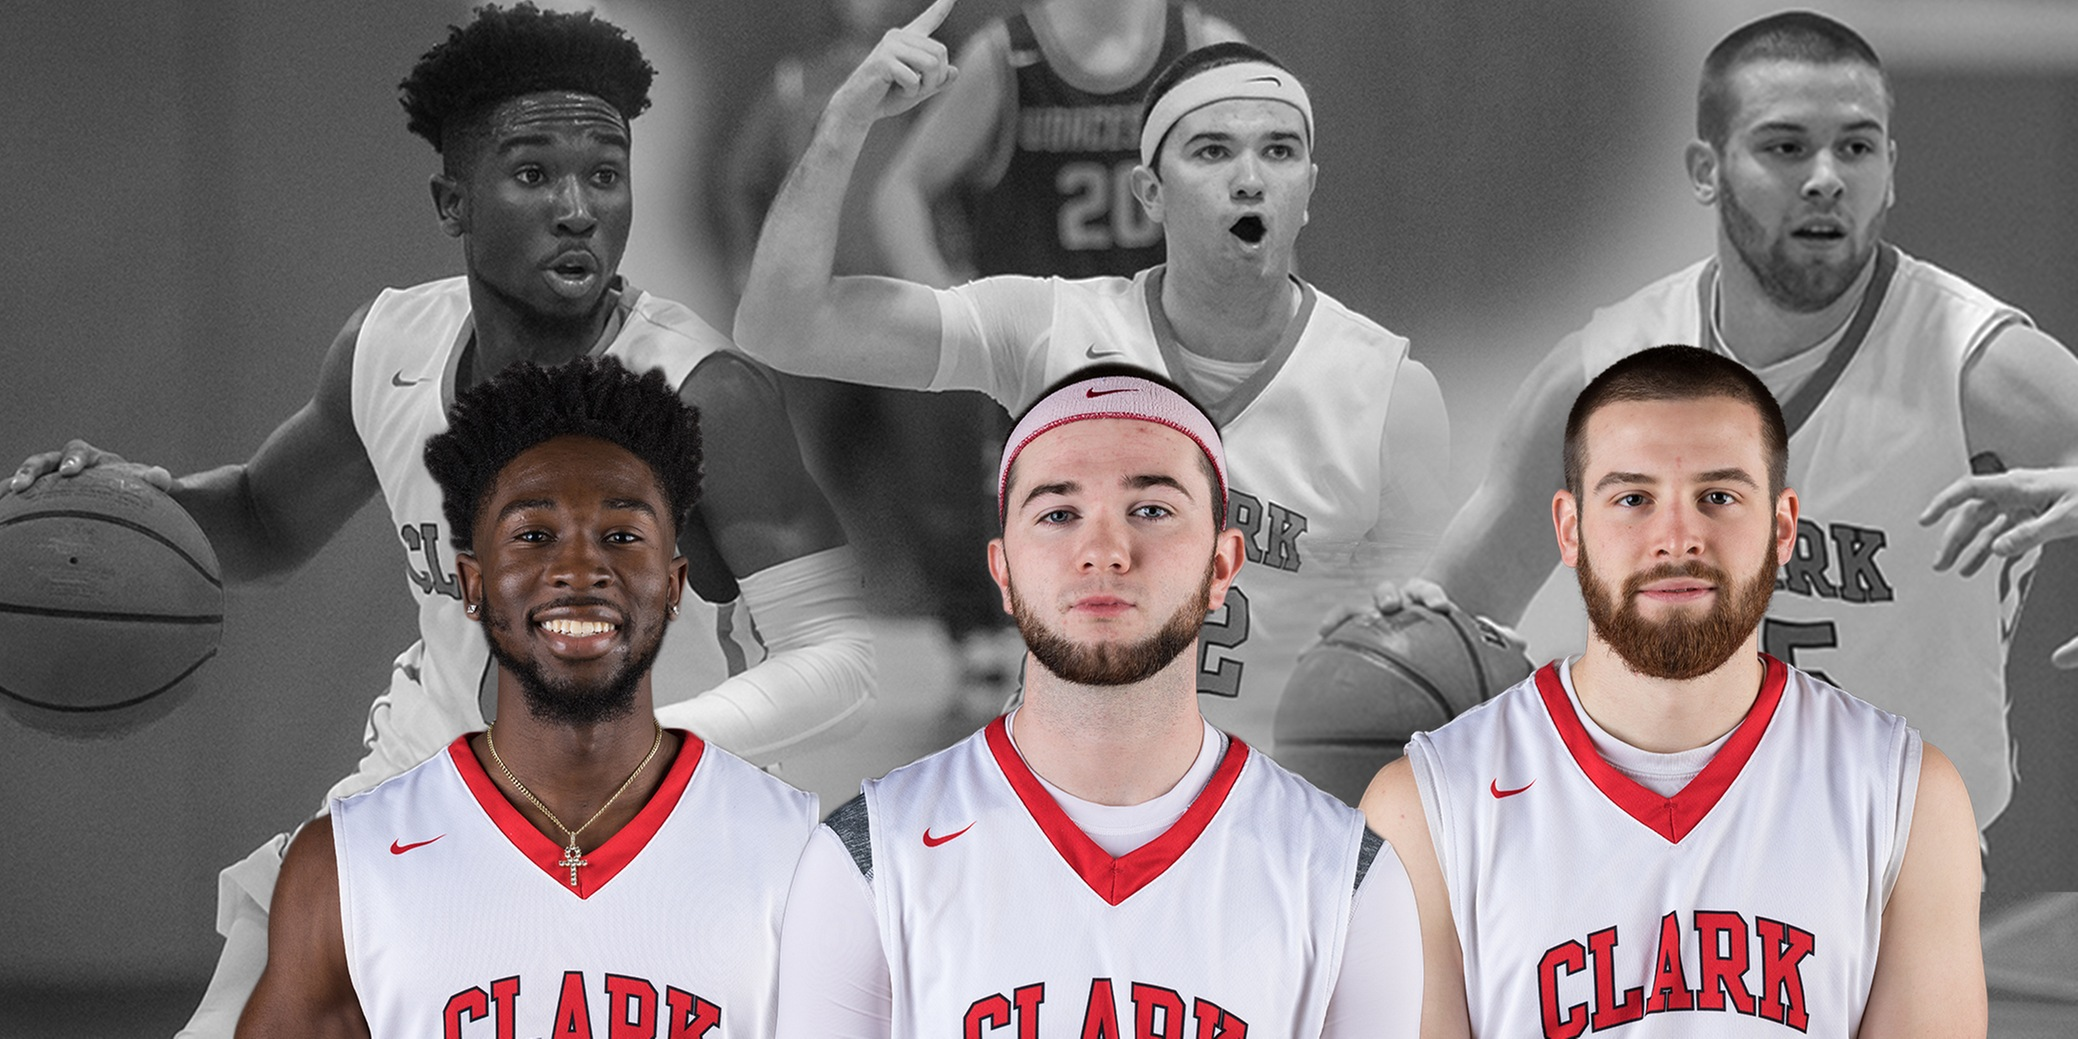 Tobin, Kittredge, Gayman Named as 2018-2019 Men's Basketball Captains